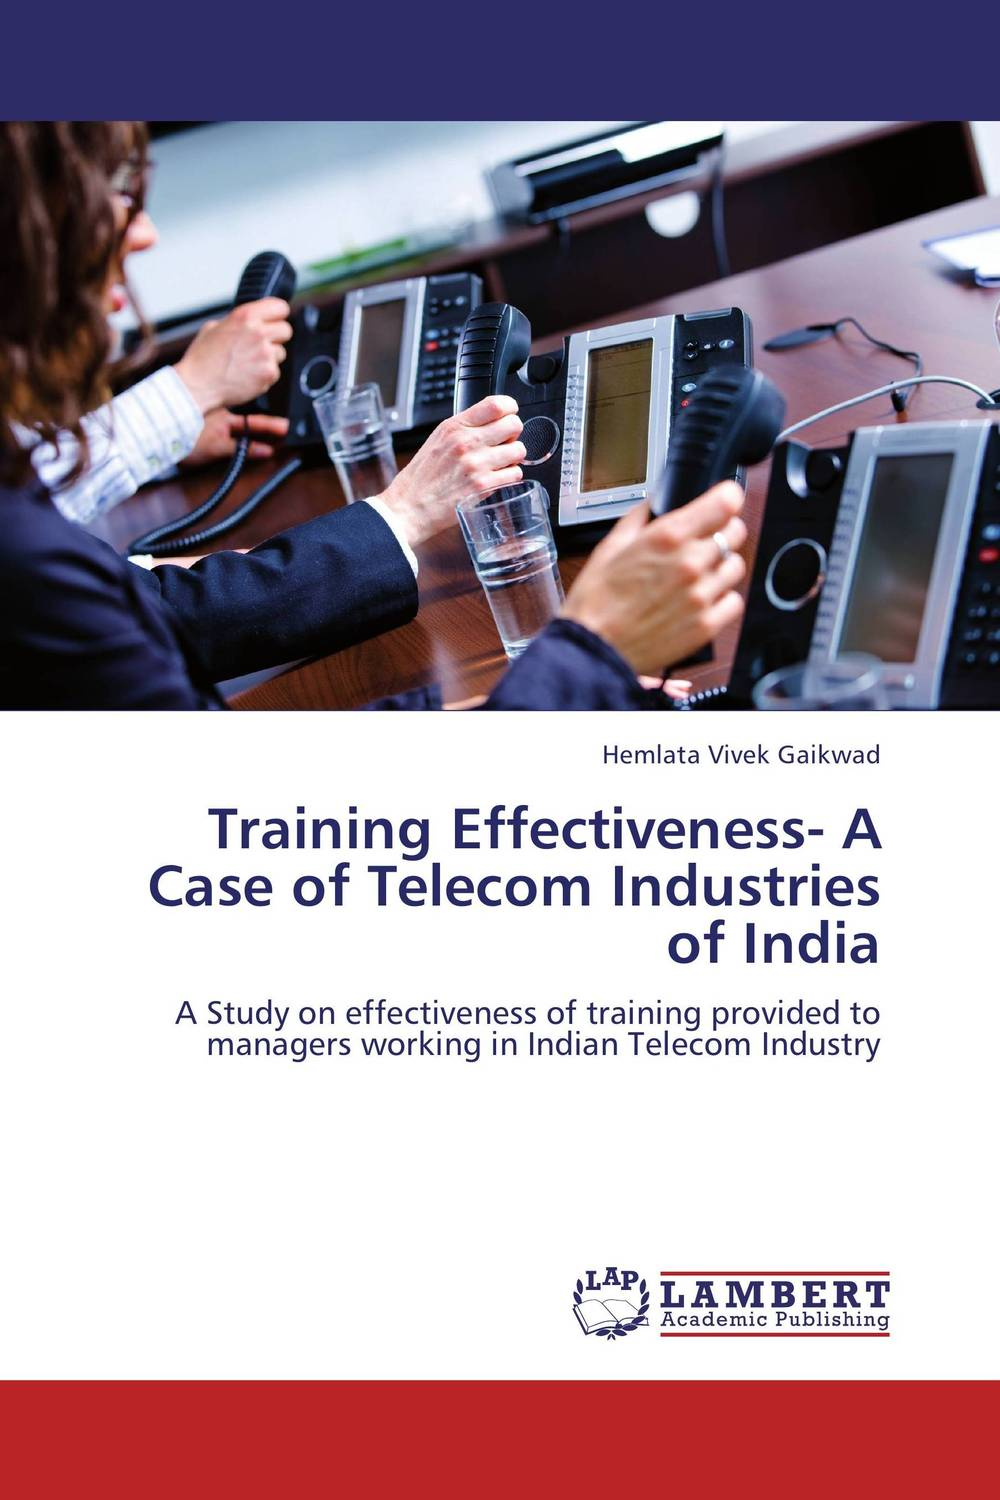 Training Effectiveness- A Case of Telecom Industries of India jill anne o sullivan validating academic training versus industry training using erp